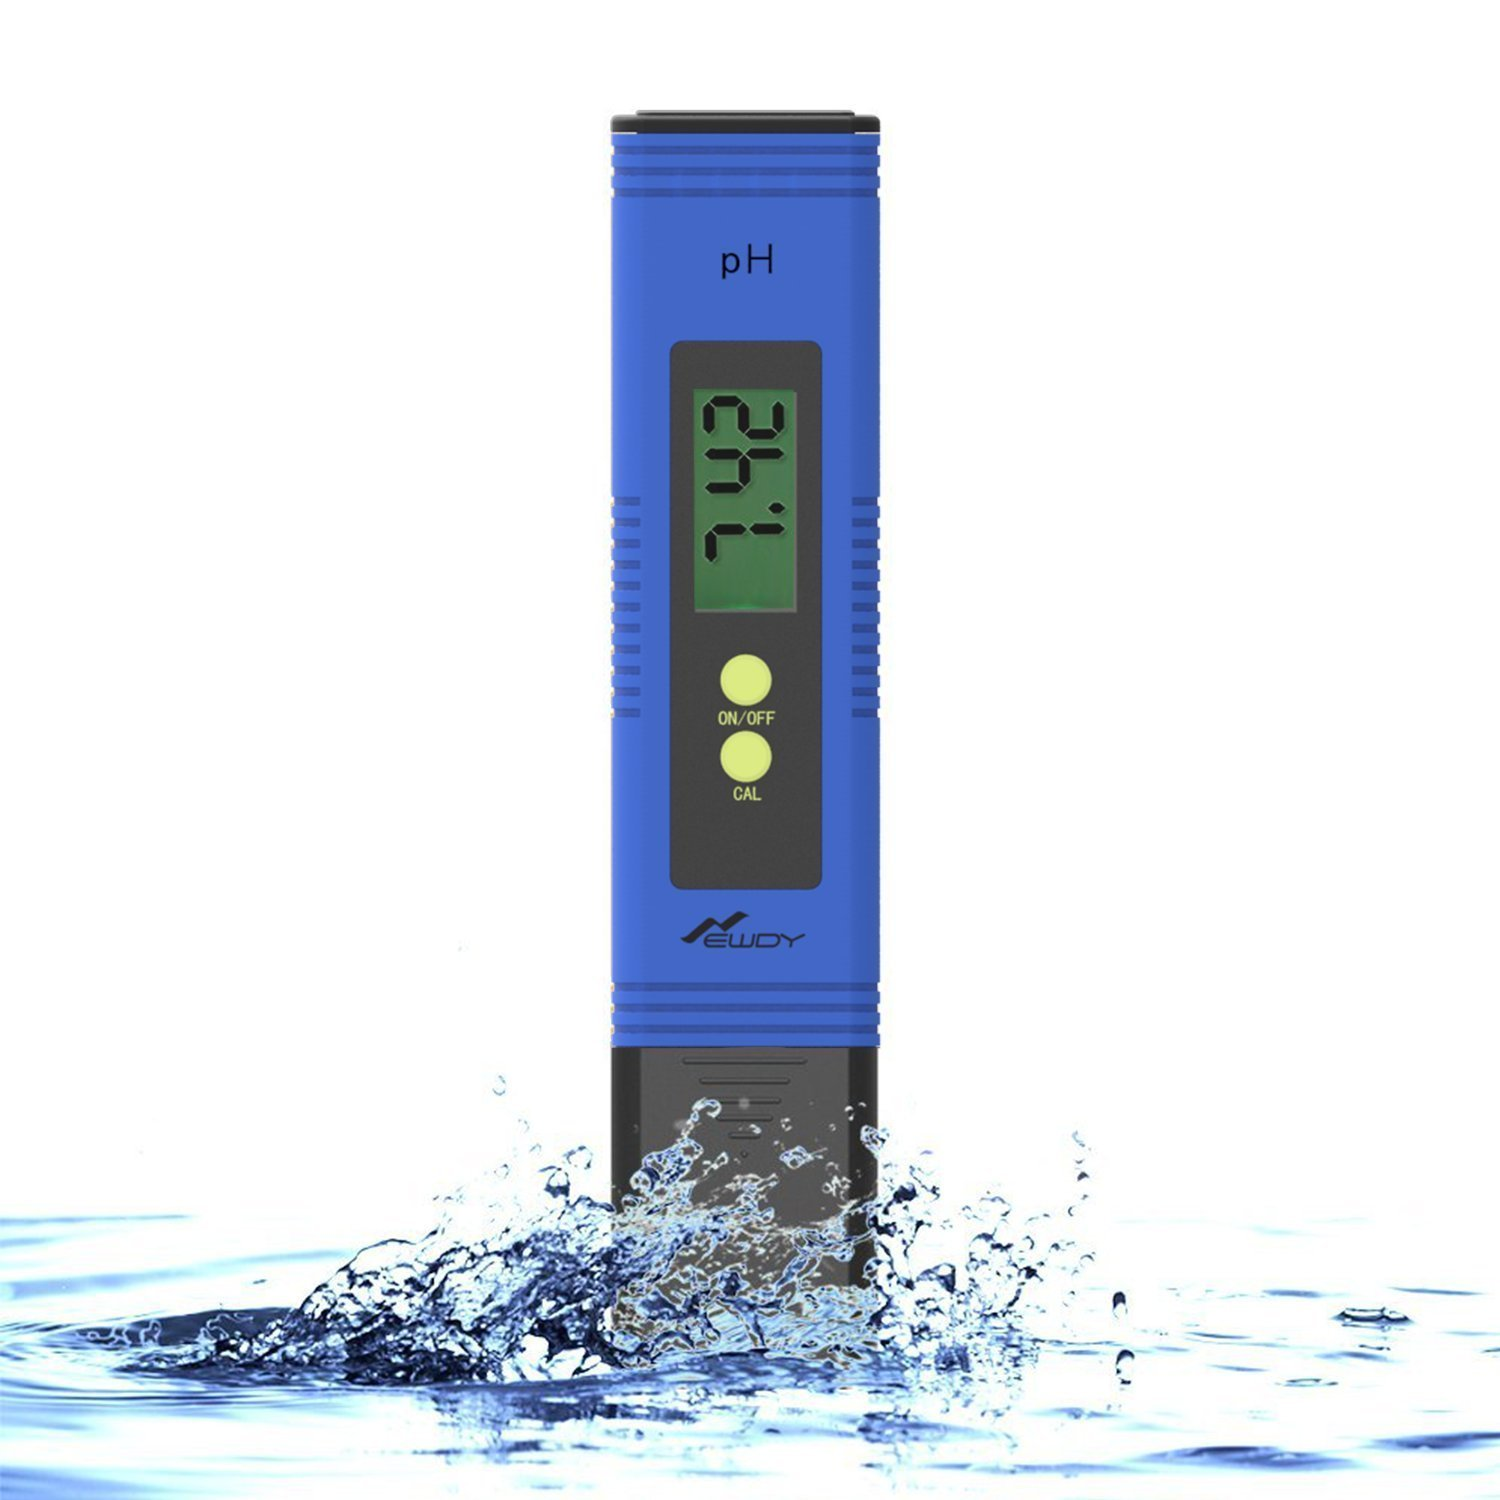 Newdy Digital PH Meter Tester for Water Quality, Food, Aquarium, Pool & Hydroponics,0.01/High Accuracy +/- 0.2 and 0.00-14.00 Measurement Range, Battery Included -Blue by Newdy